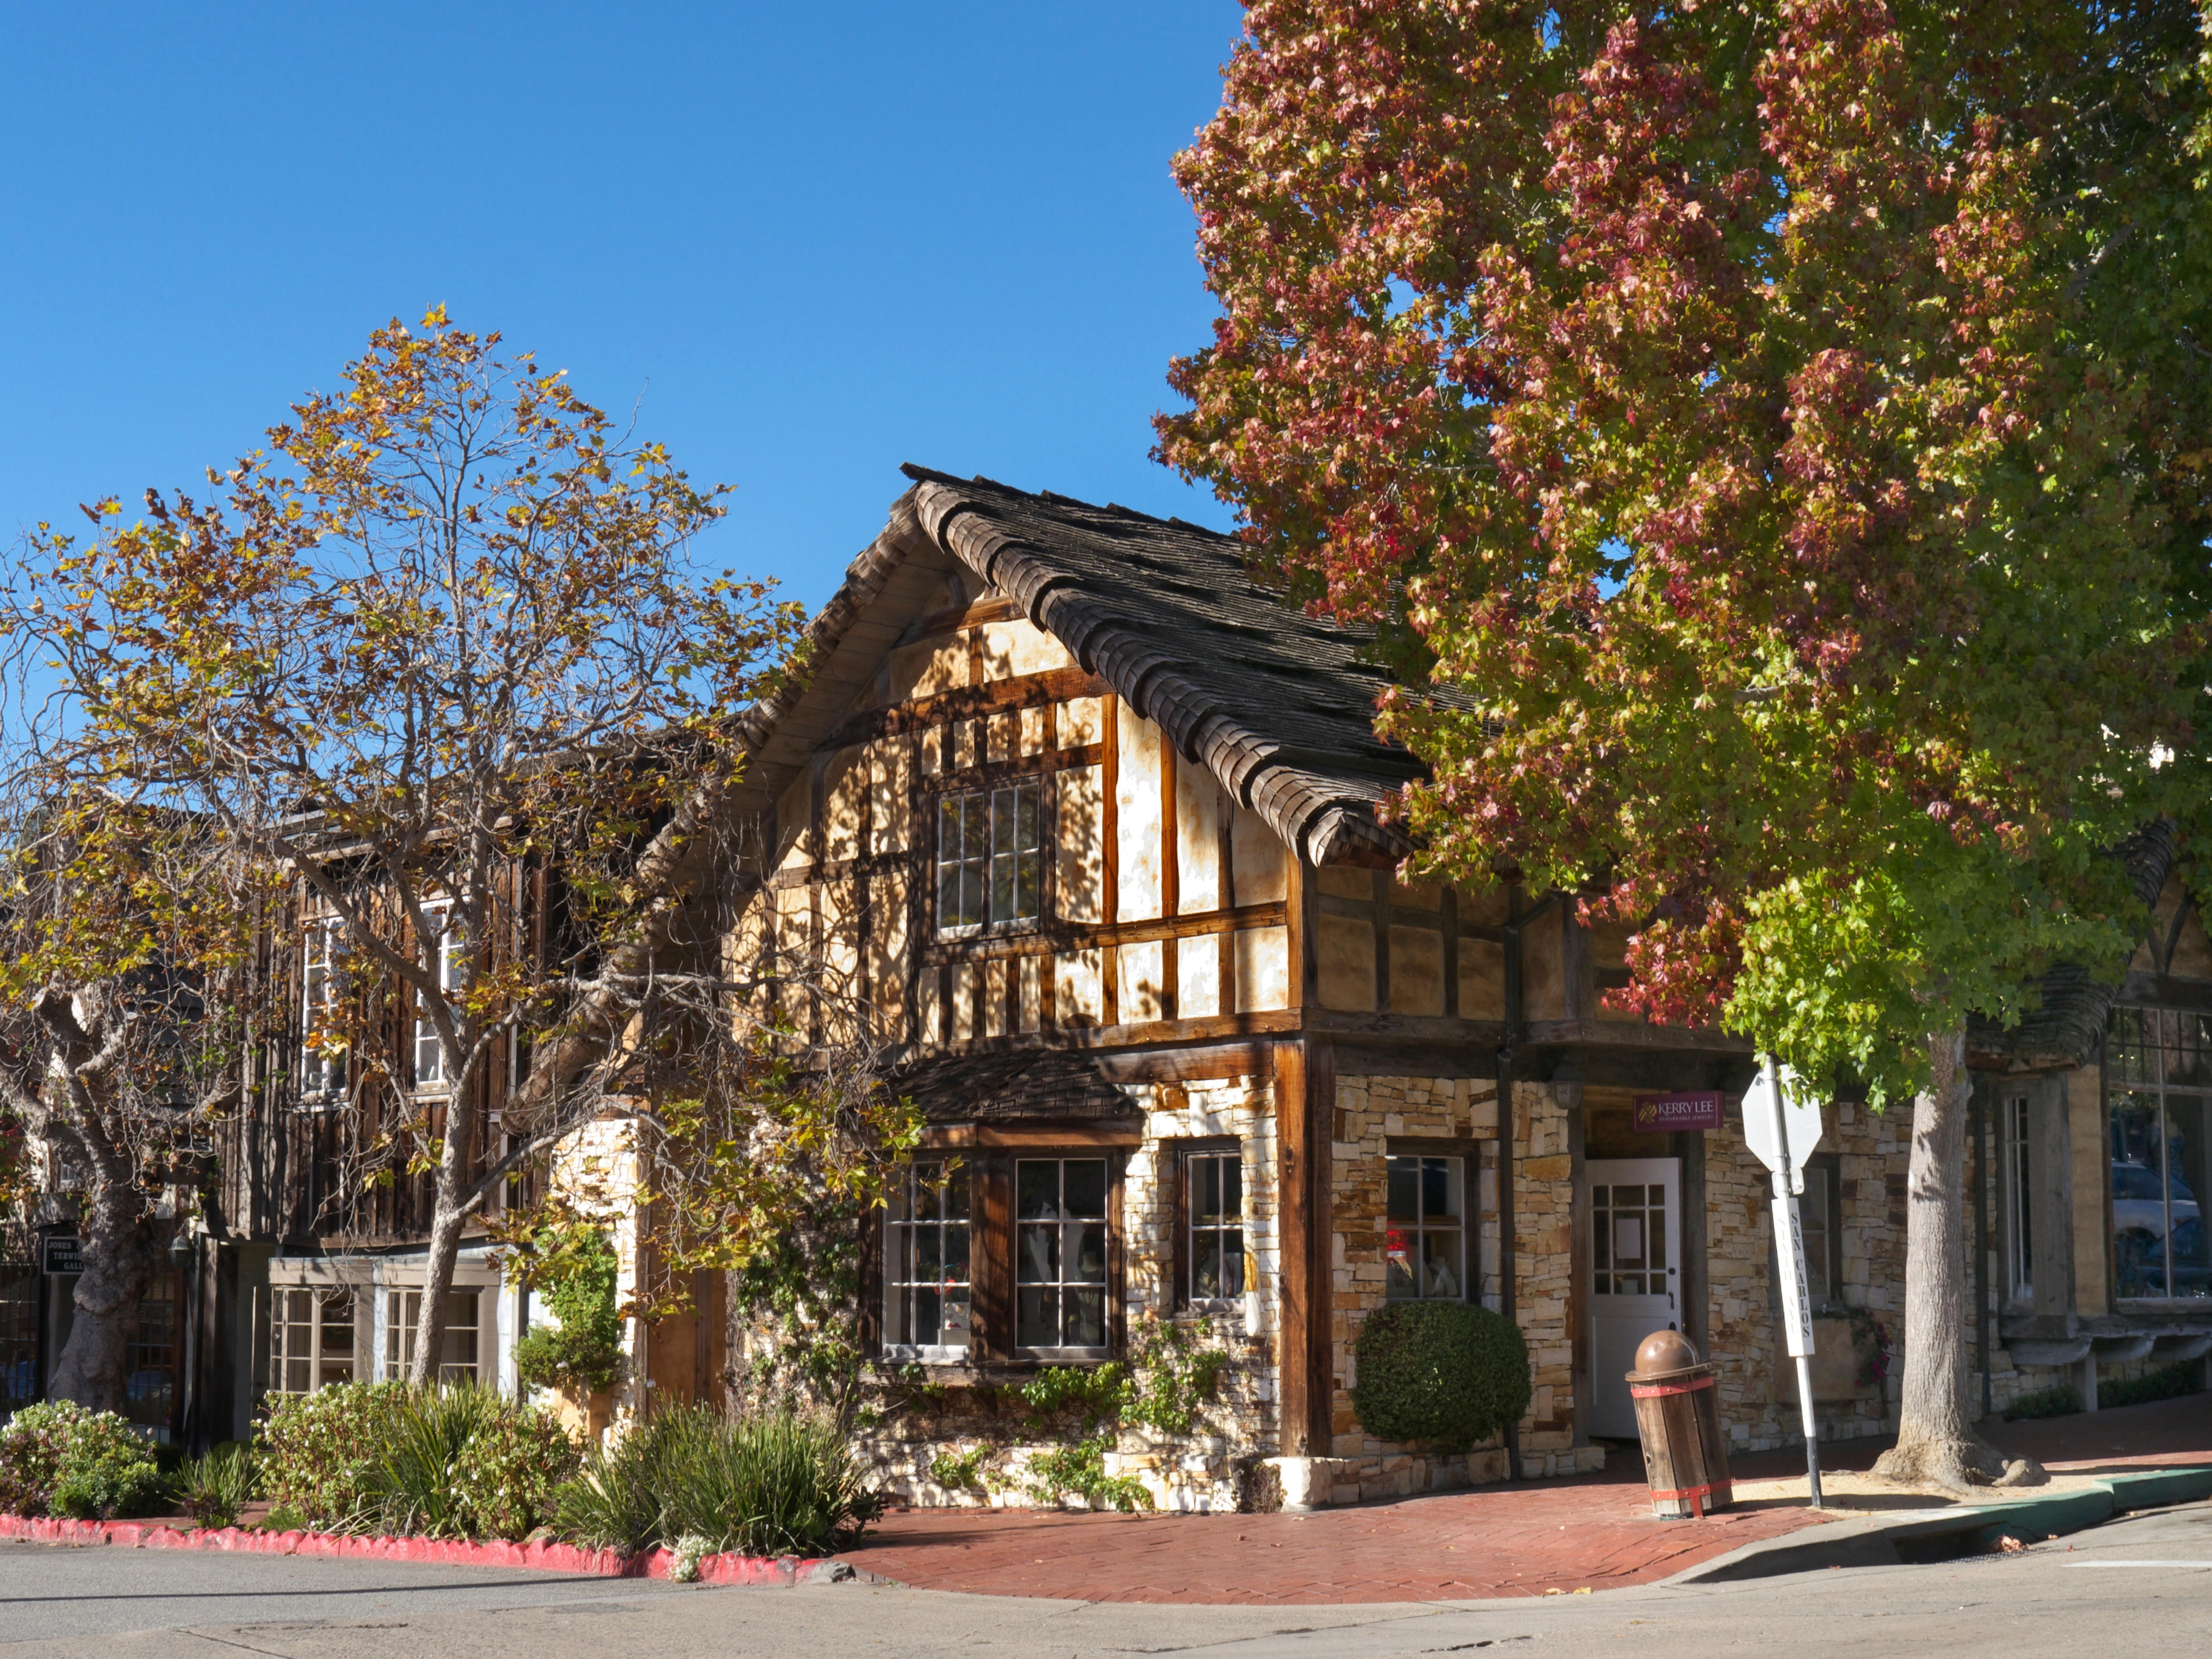 During your visit to Santa Cruz, you can enjoy retail therapy at Ocean Street. Wander the area's beautiful beaches or simply enjoy one of its top-notch restaurants.